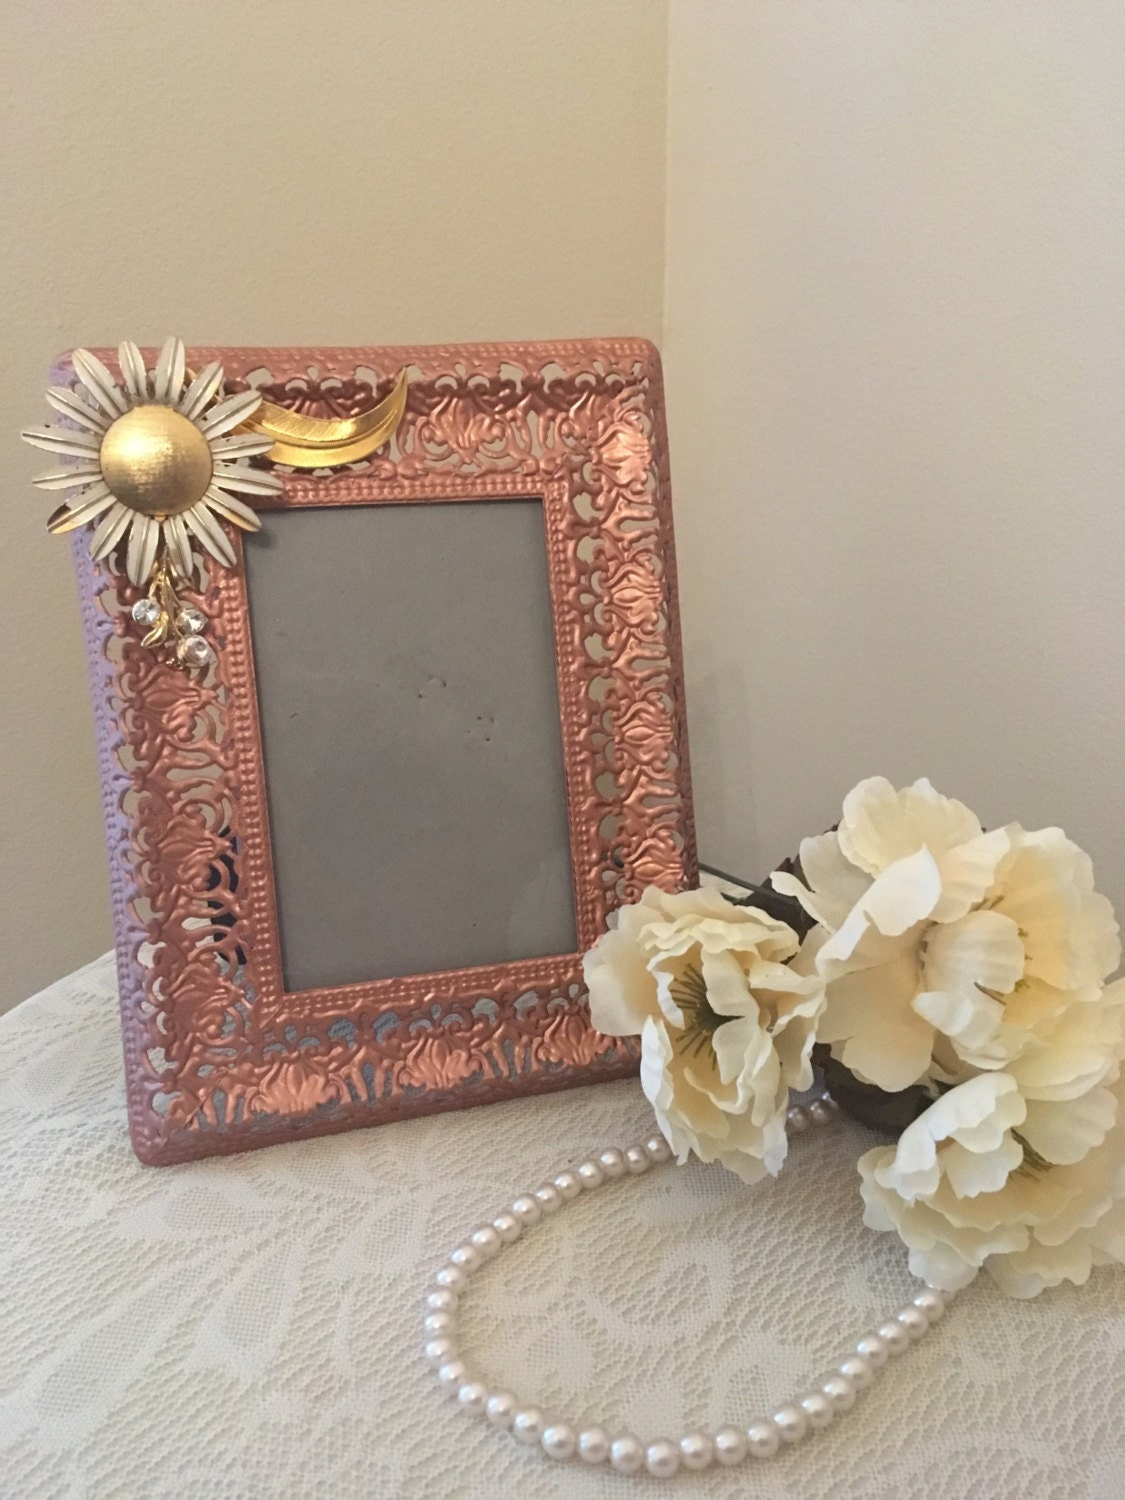 Sale rose gold home decor copper decor picture frame - Rosegold dekoration ...